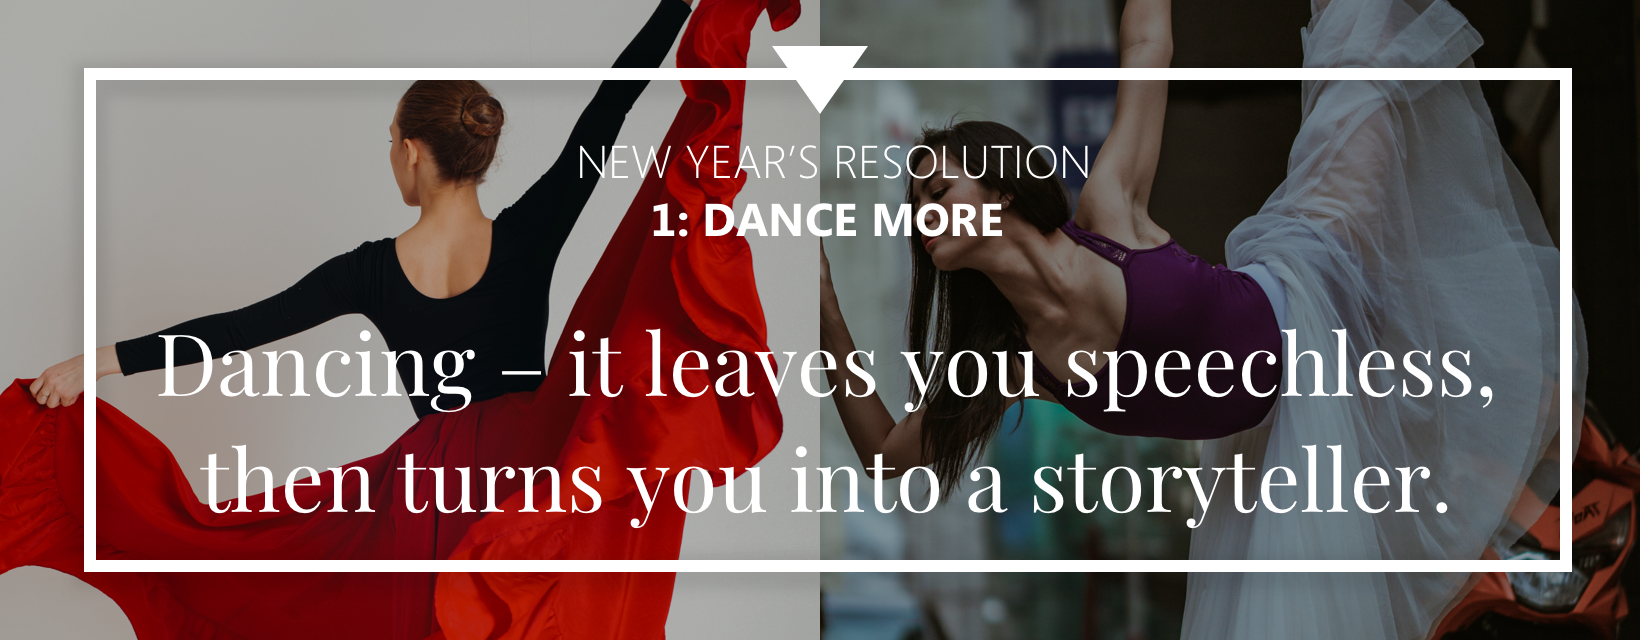 New Year's resolutions for dancers N1: Dance more